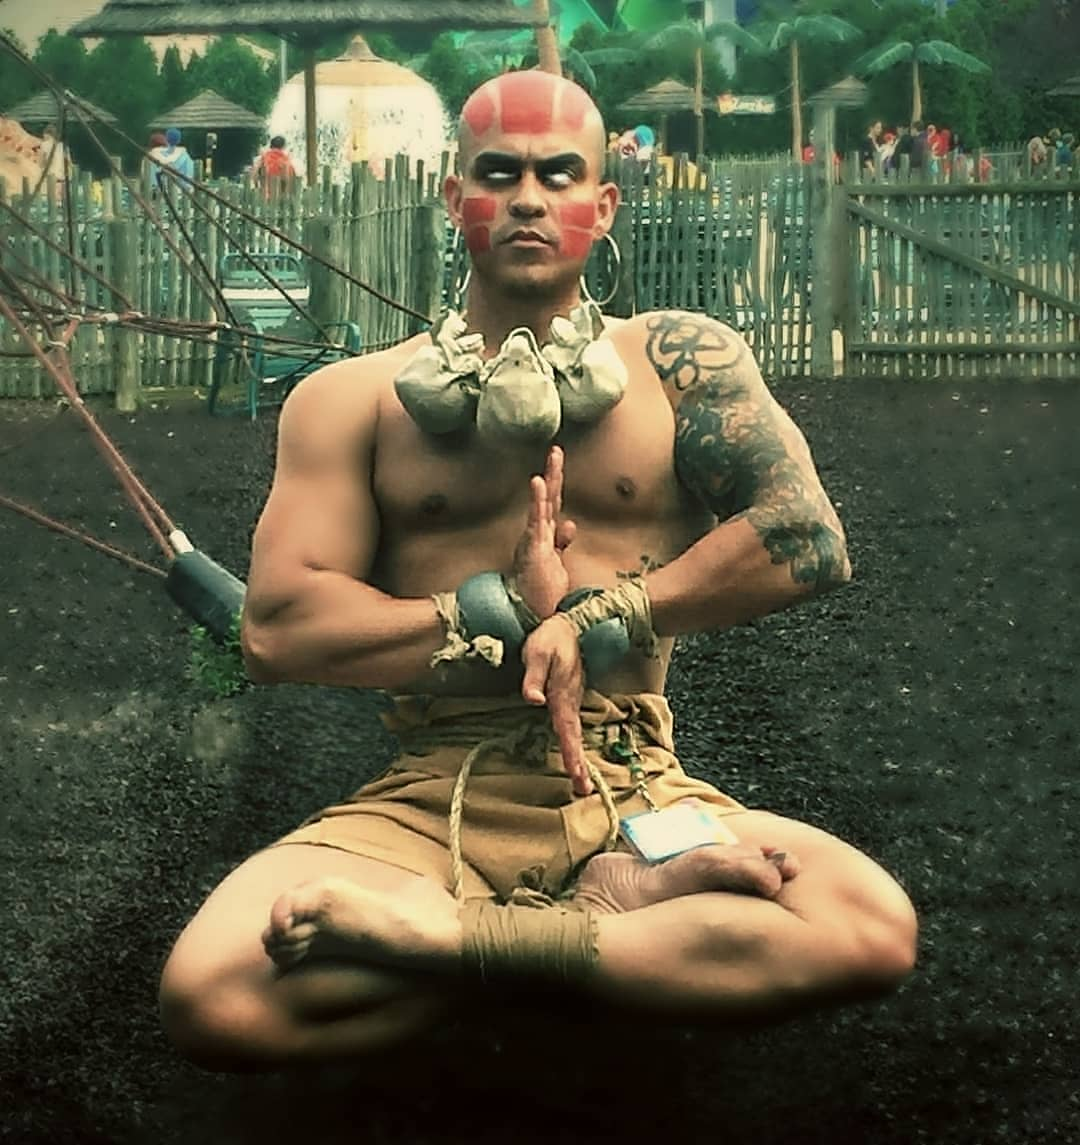 dhalsim streetfighter cosplay by erand.cosplay cosplay photo by silkyb_cosplay